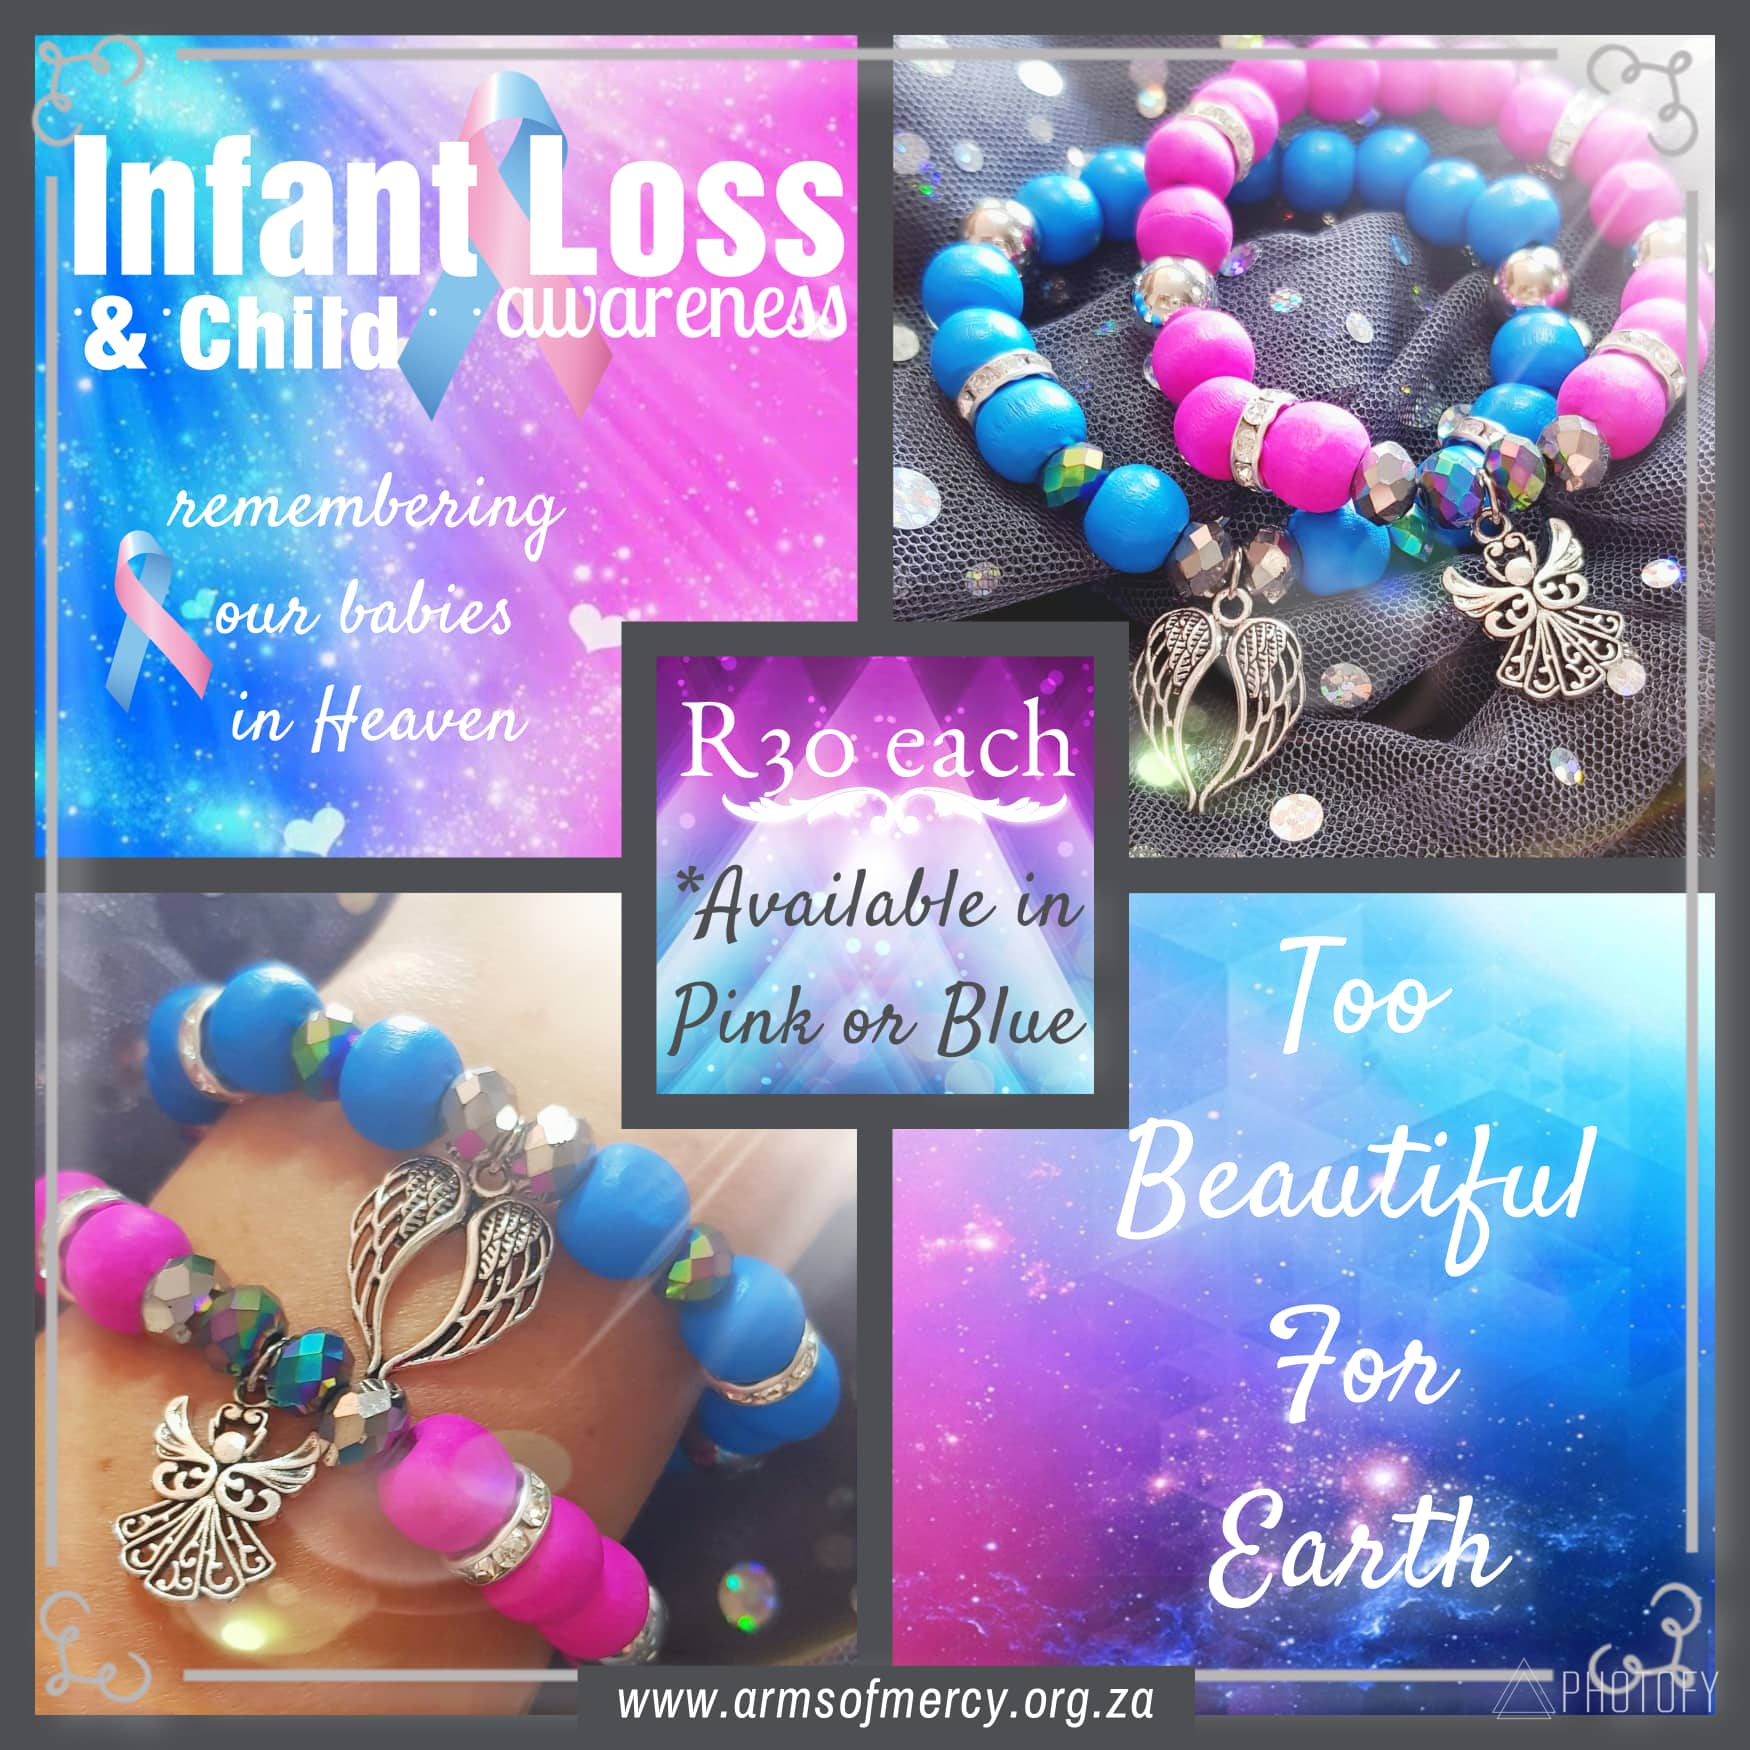 Infant and Child Loss Awareness Bracelets © Arms of Mercy NPC